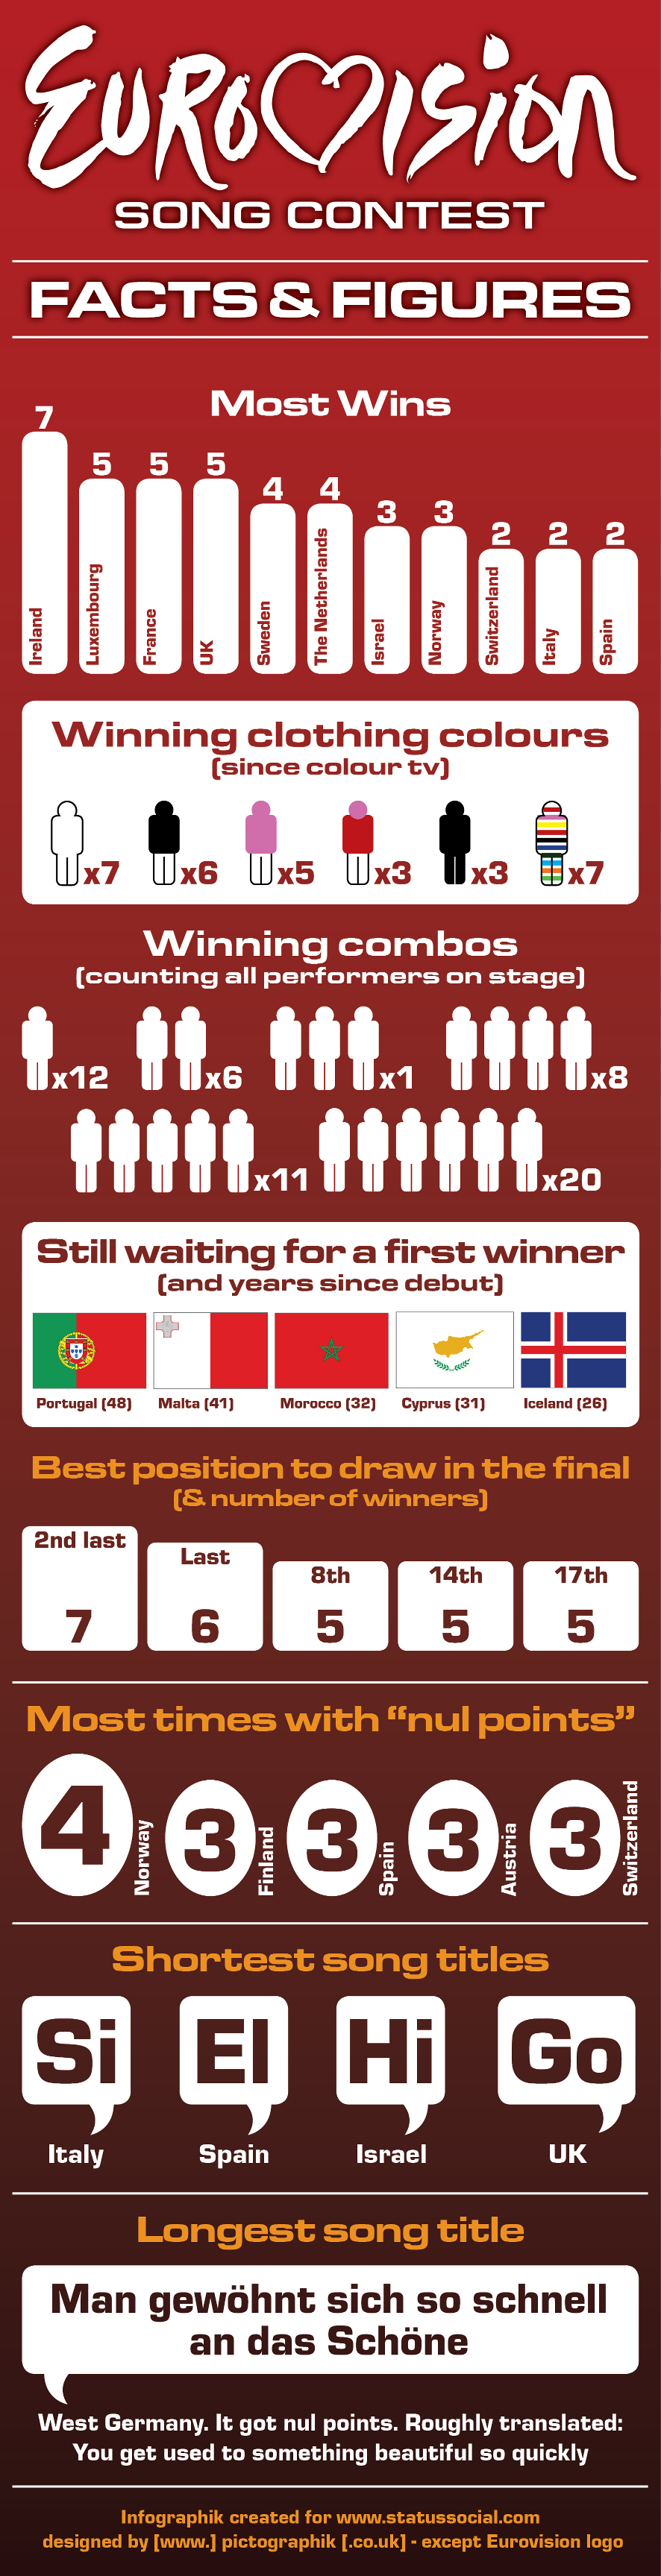 Eurovision facts and figures